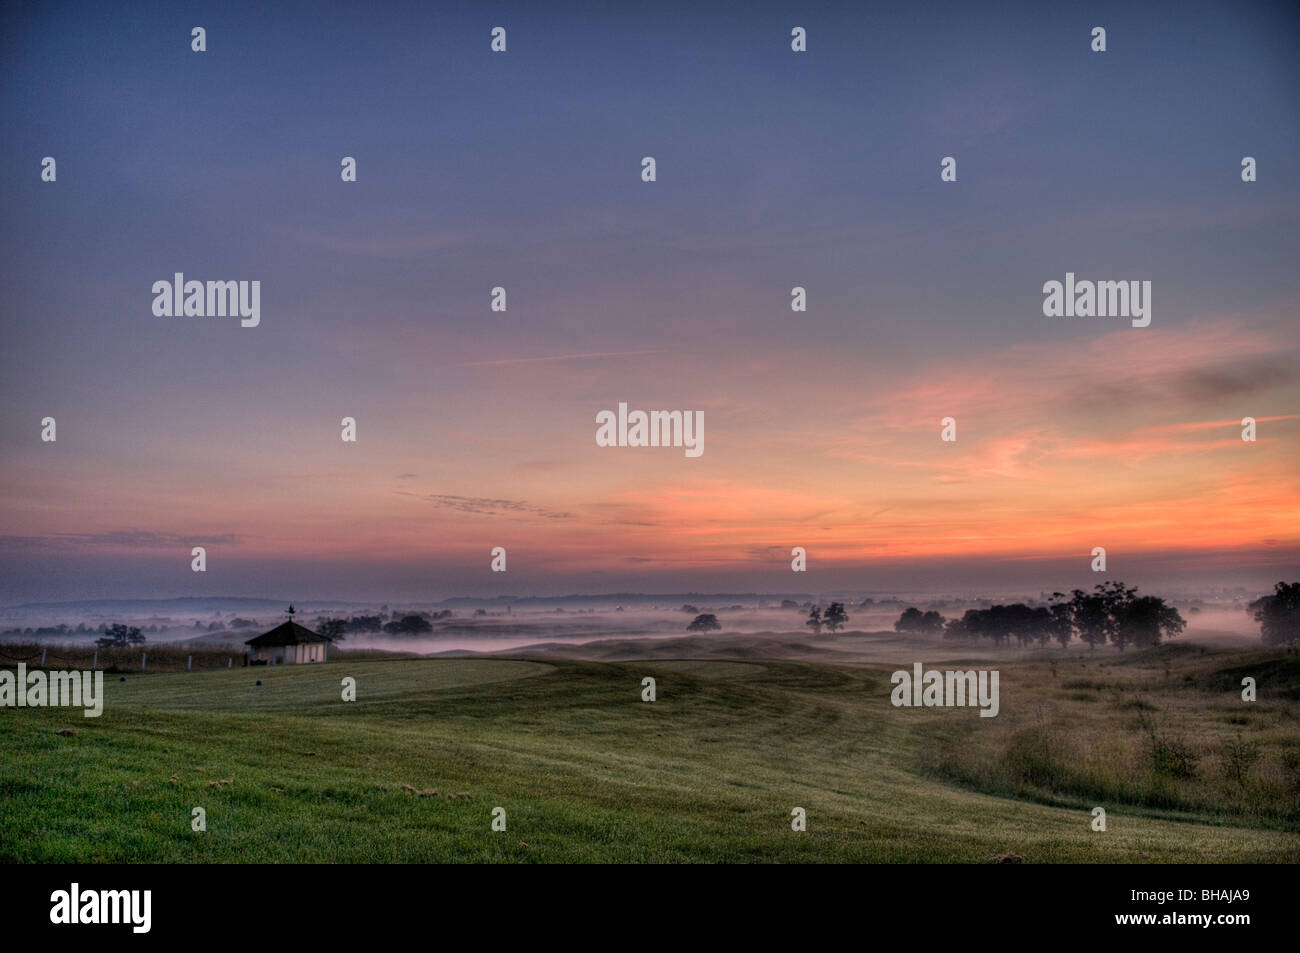 Dawn rises over the first hole of the Oxfordshire Golf Club, Thame, Oxfordshire. - Stock Image